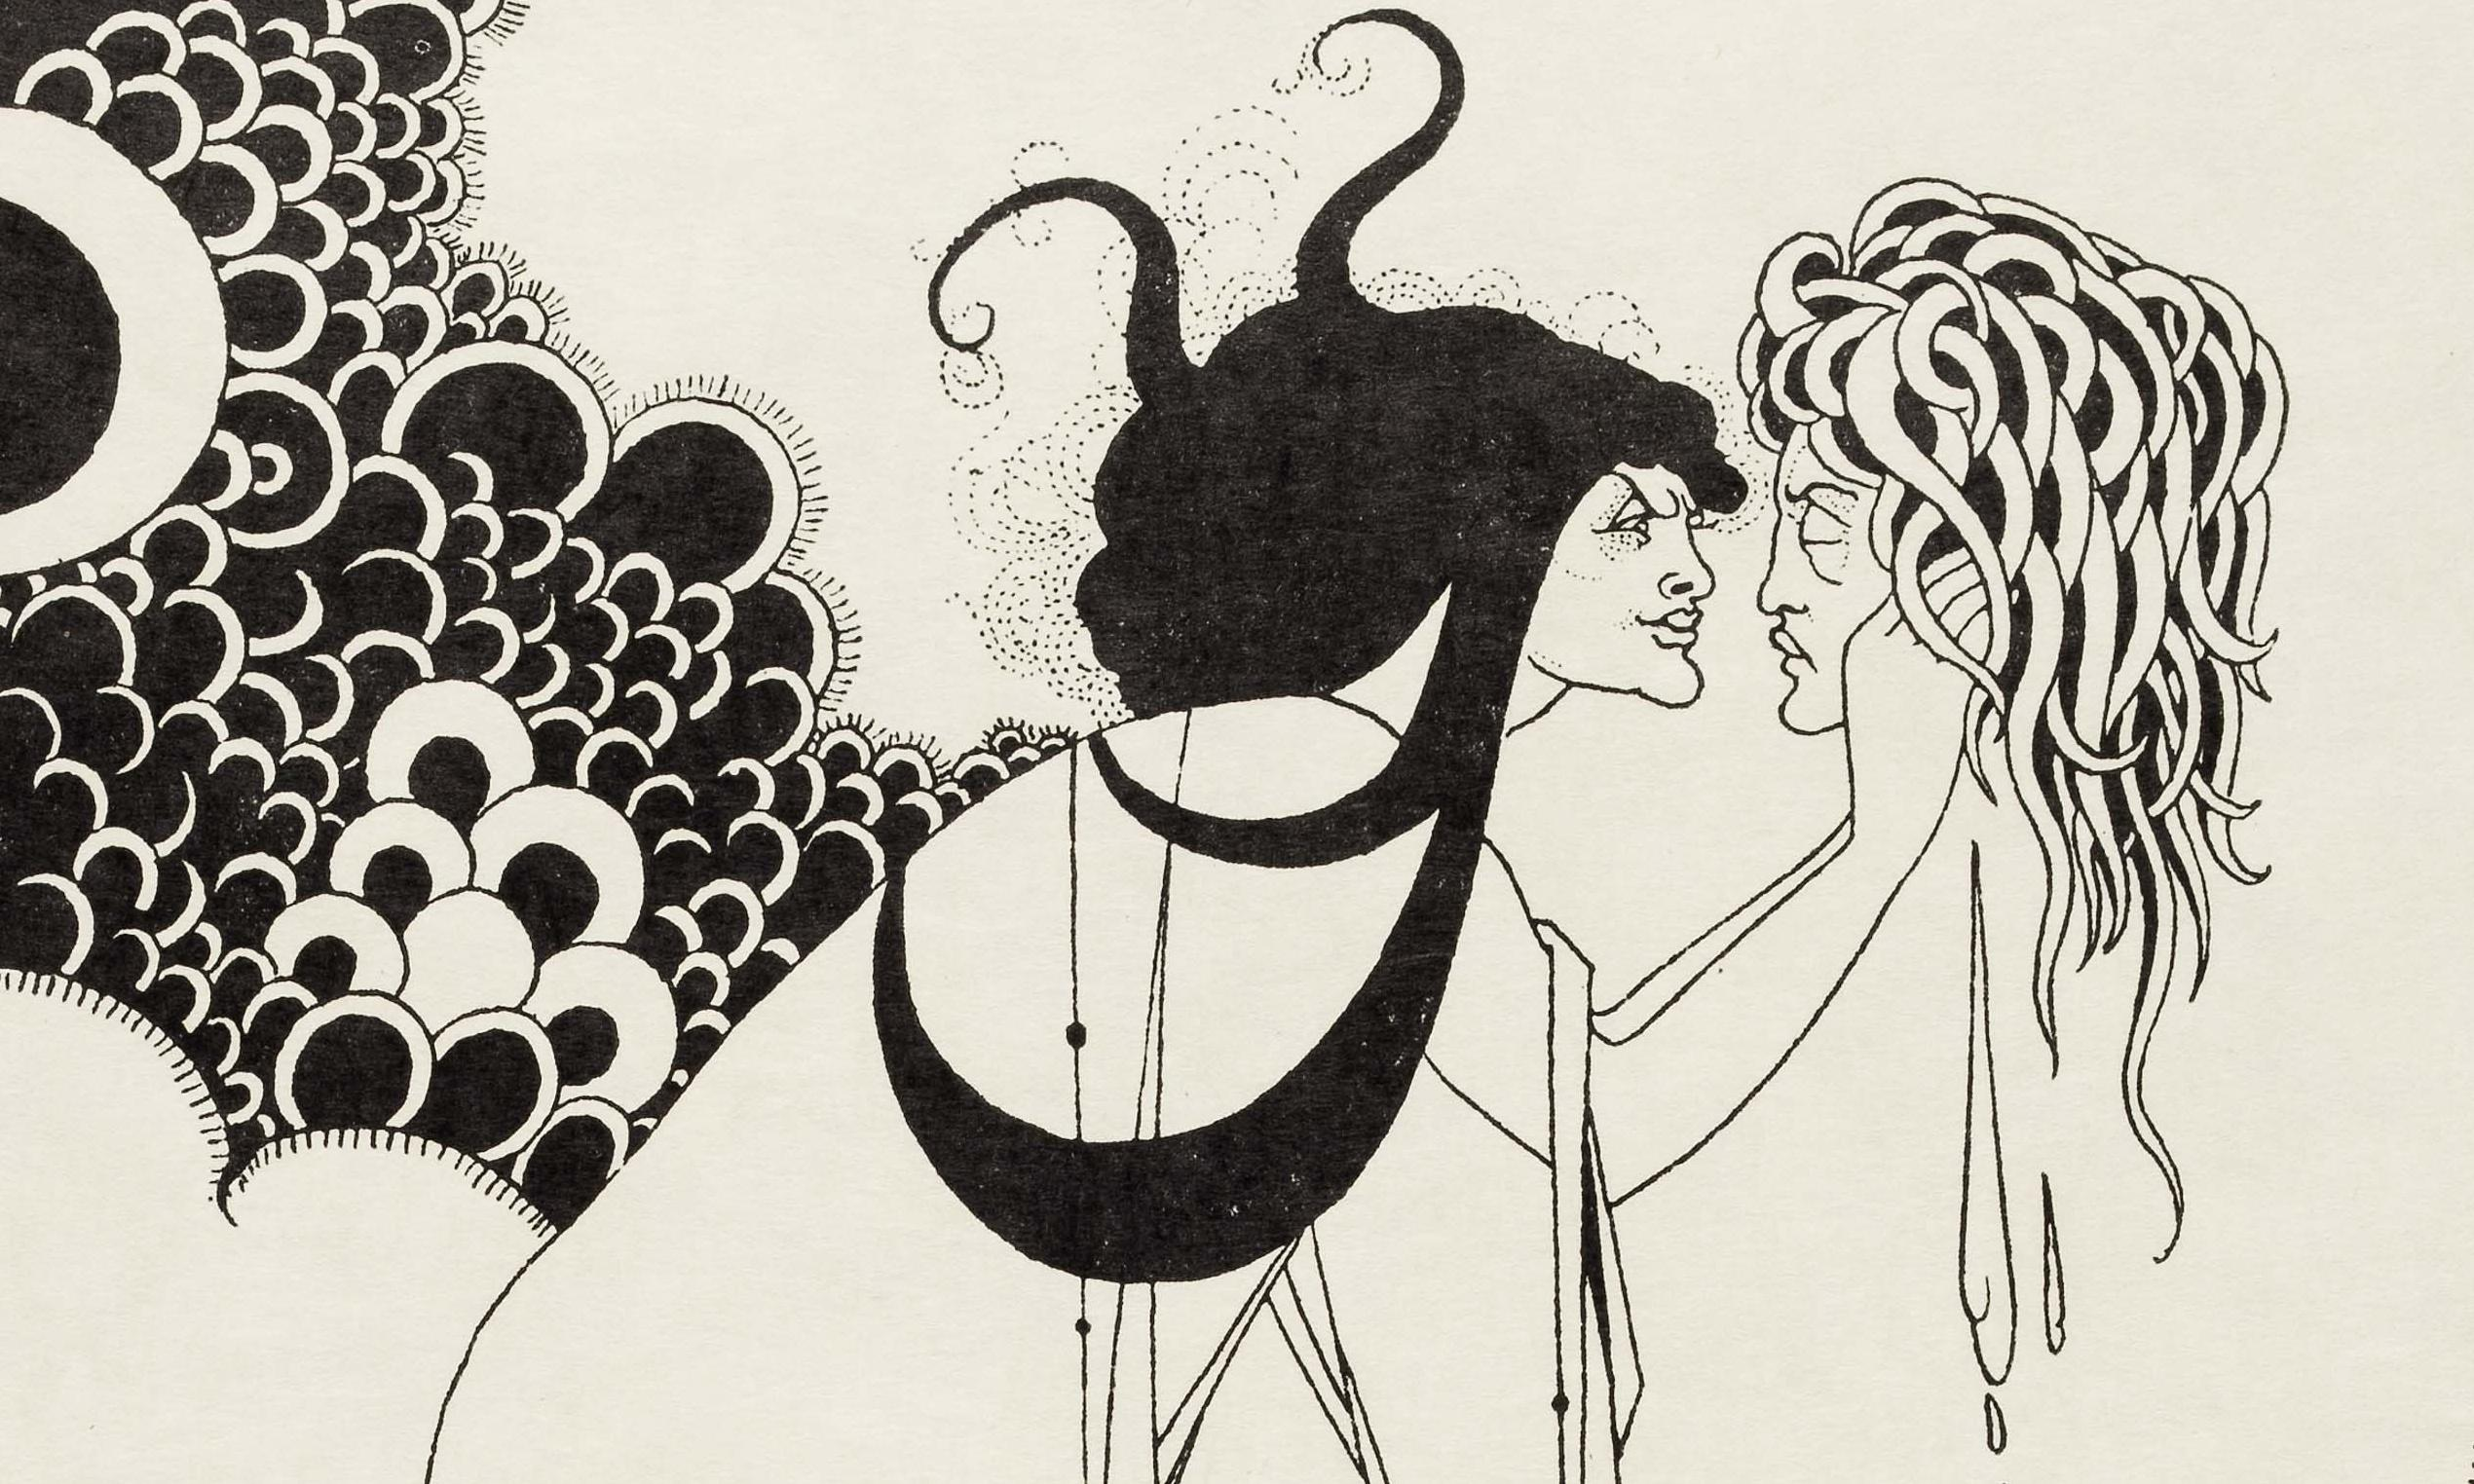 Too filthy to print – Aubrey Beardsley and his explosions of obscenity